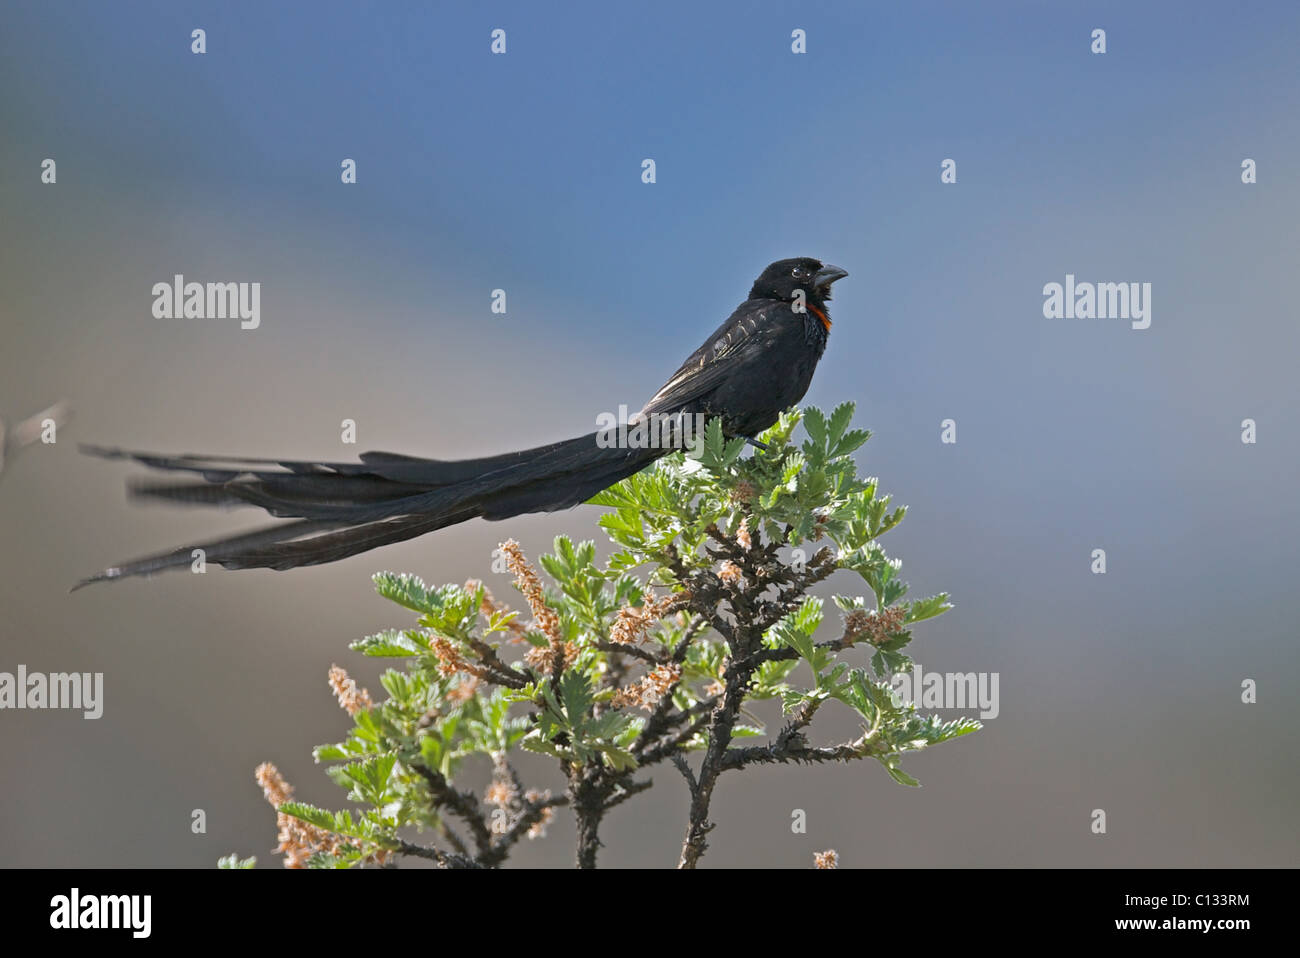 Red-collared Widowbird (Euplectes ardens) perching on bush in Wartrail district, Eastern Cape Province, South Africa - Stock Image